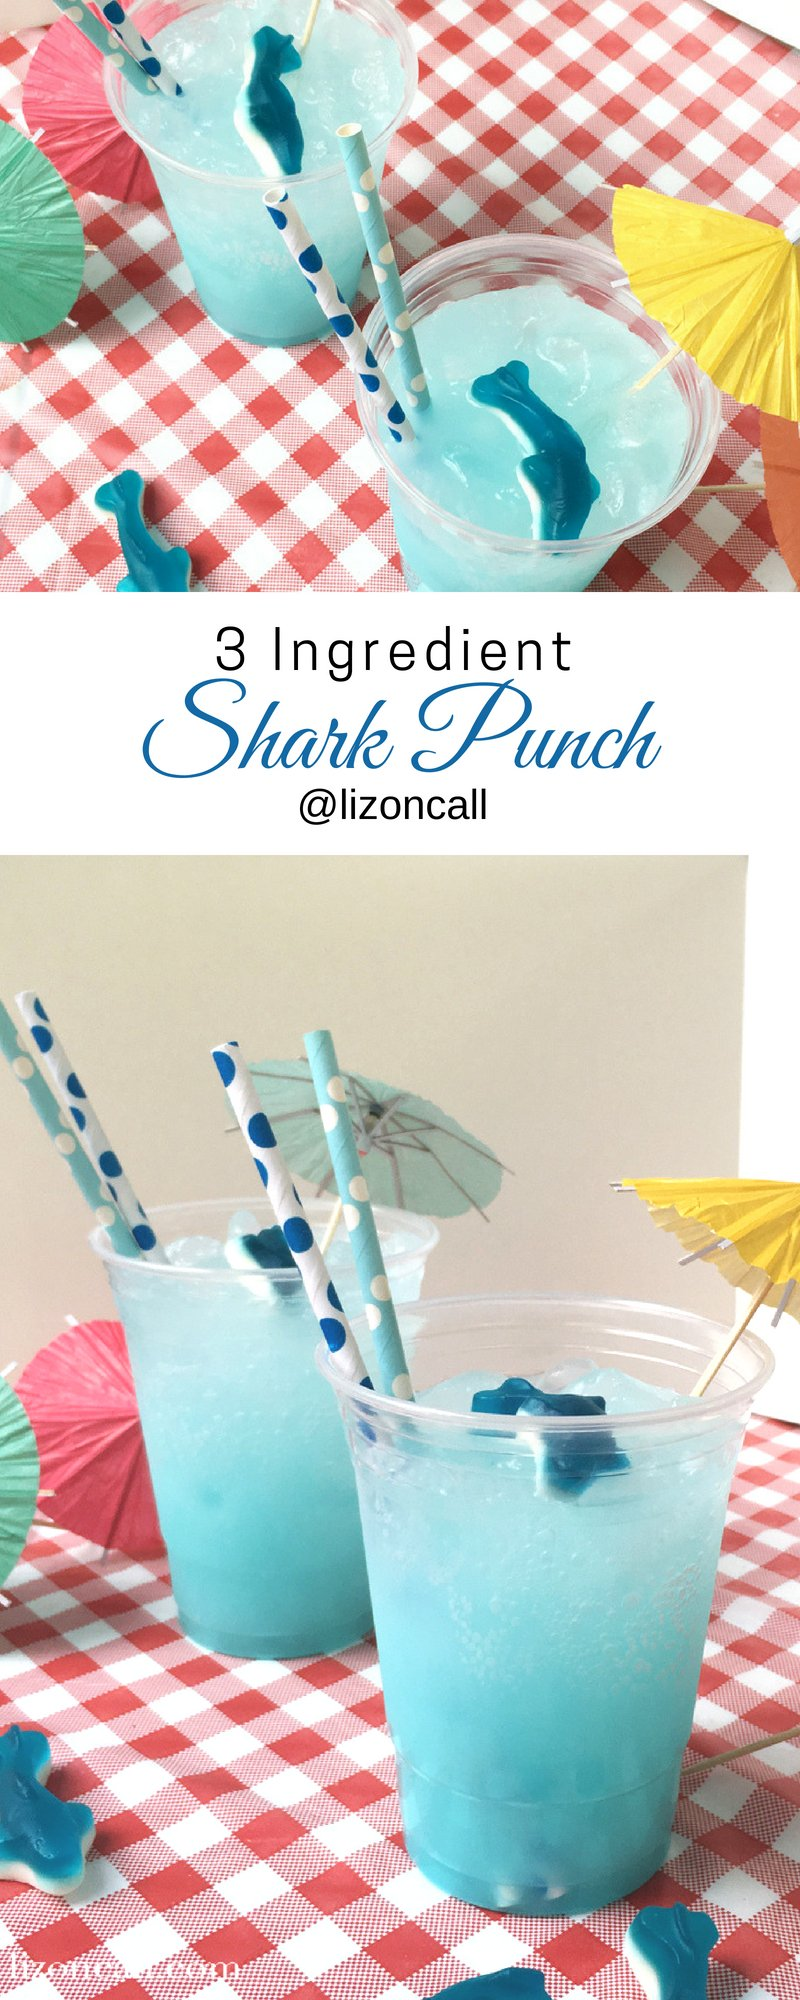 Make your shark week viewing parties extra fun with this easy shark party punch.  Guests of all ages will love sipping on this easy party punch recipe perfect for shark week or a hot summer day. #sharkpunch #partypunch #easypartypunchrecipe